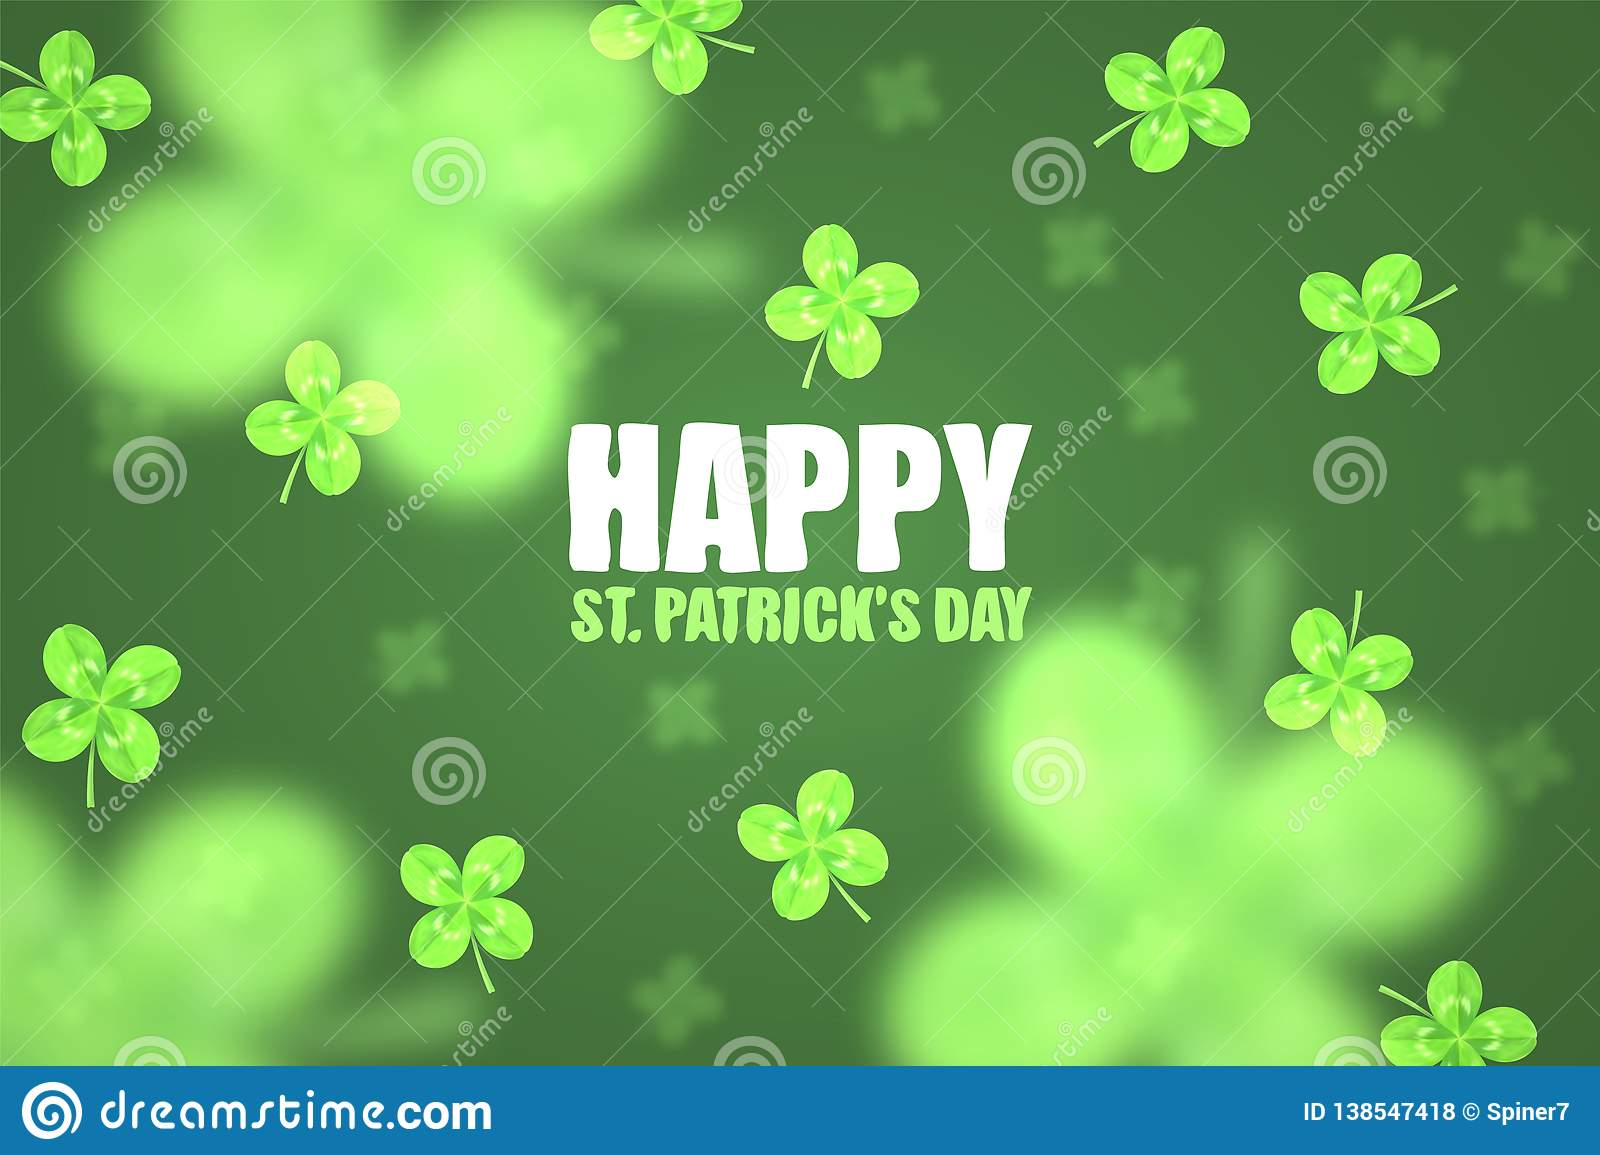 Abstract background for St. Patrick`s day. Clover leaves in the foreground and background blurred.